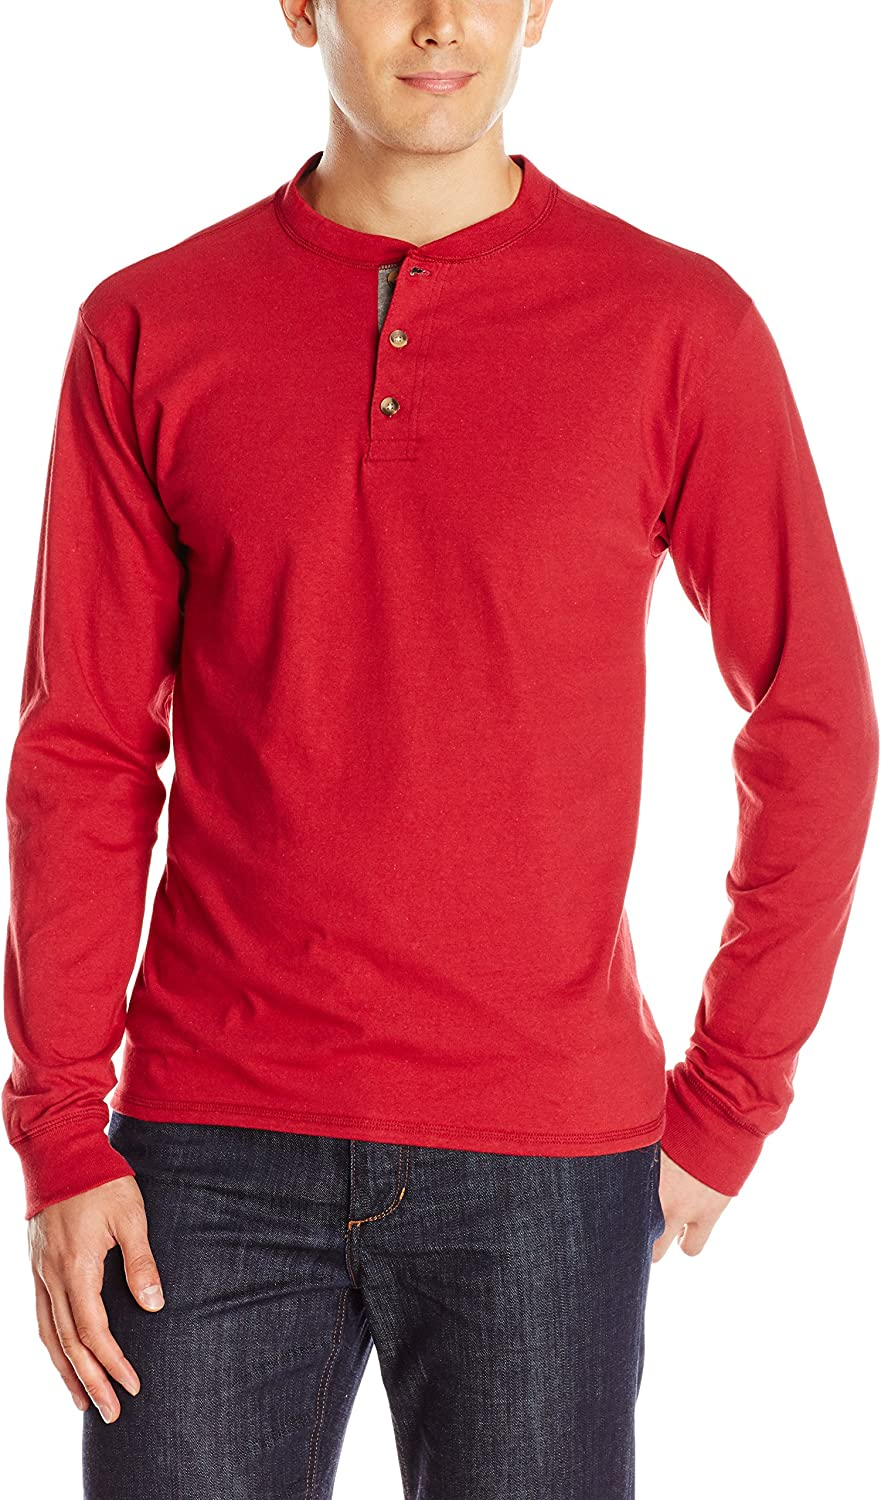 Hanes Men's Long-Sleeve Beefy Henley Shirt